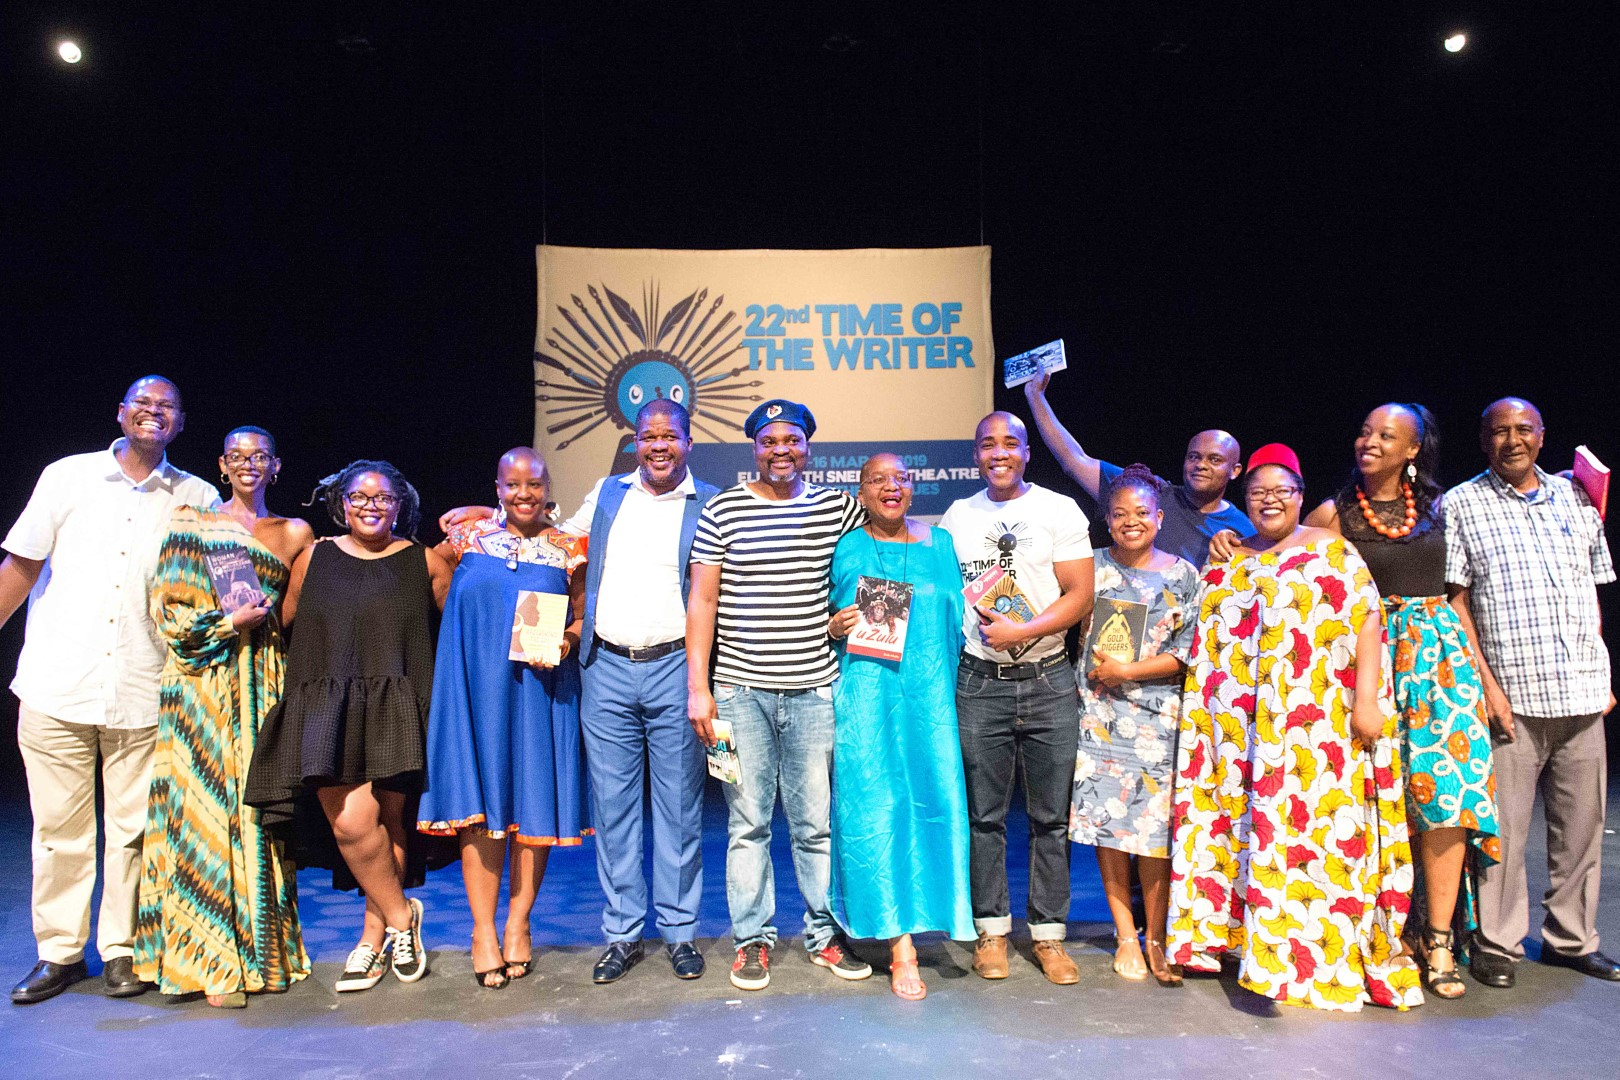 Highlights from the Time of the Writer festival.